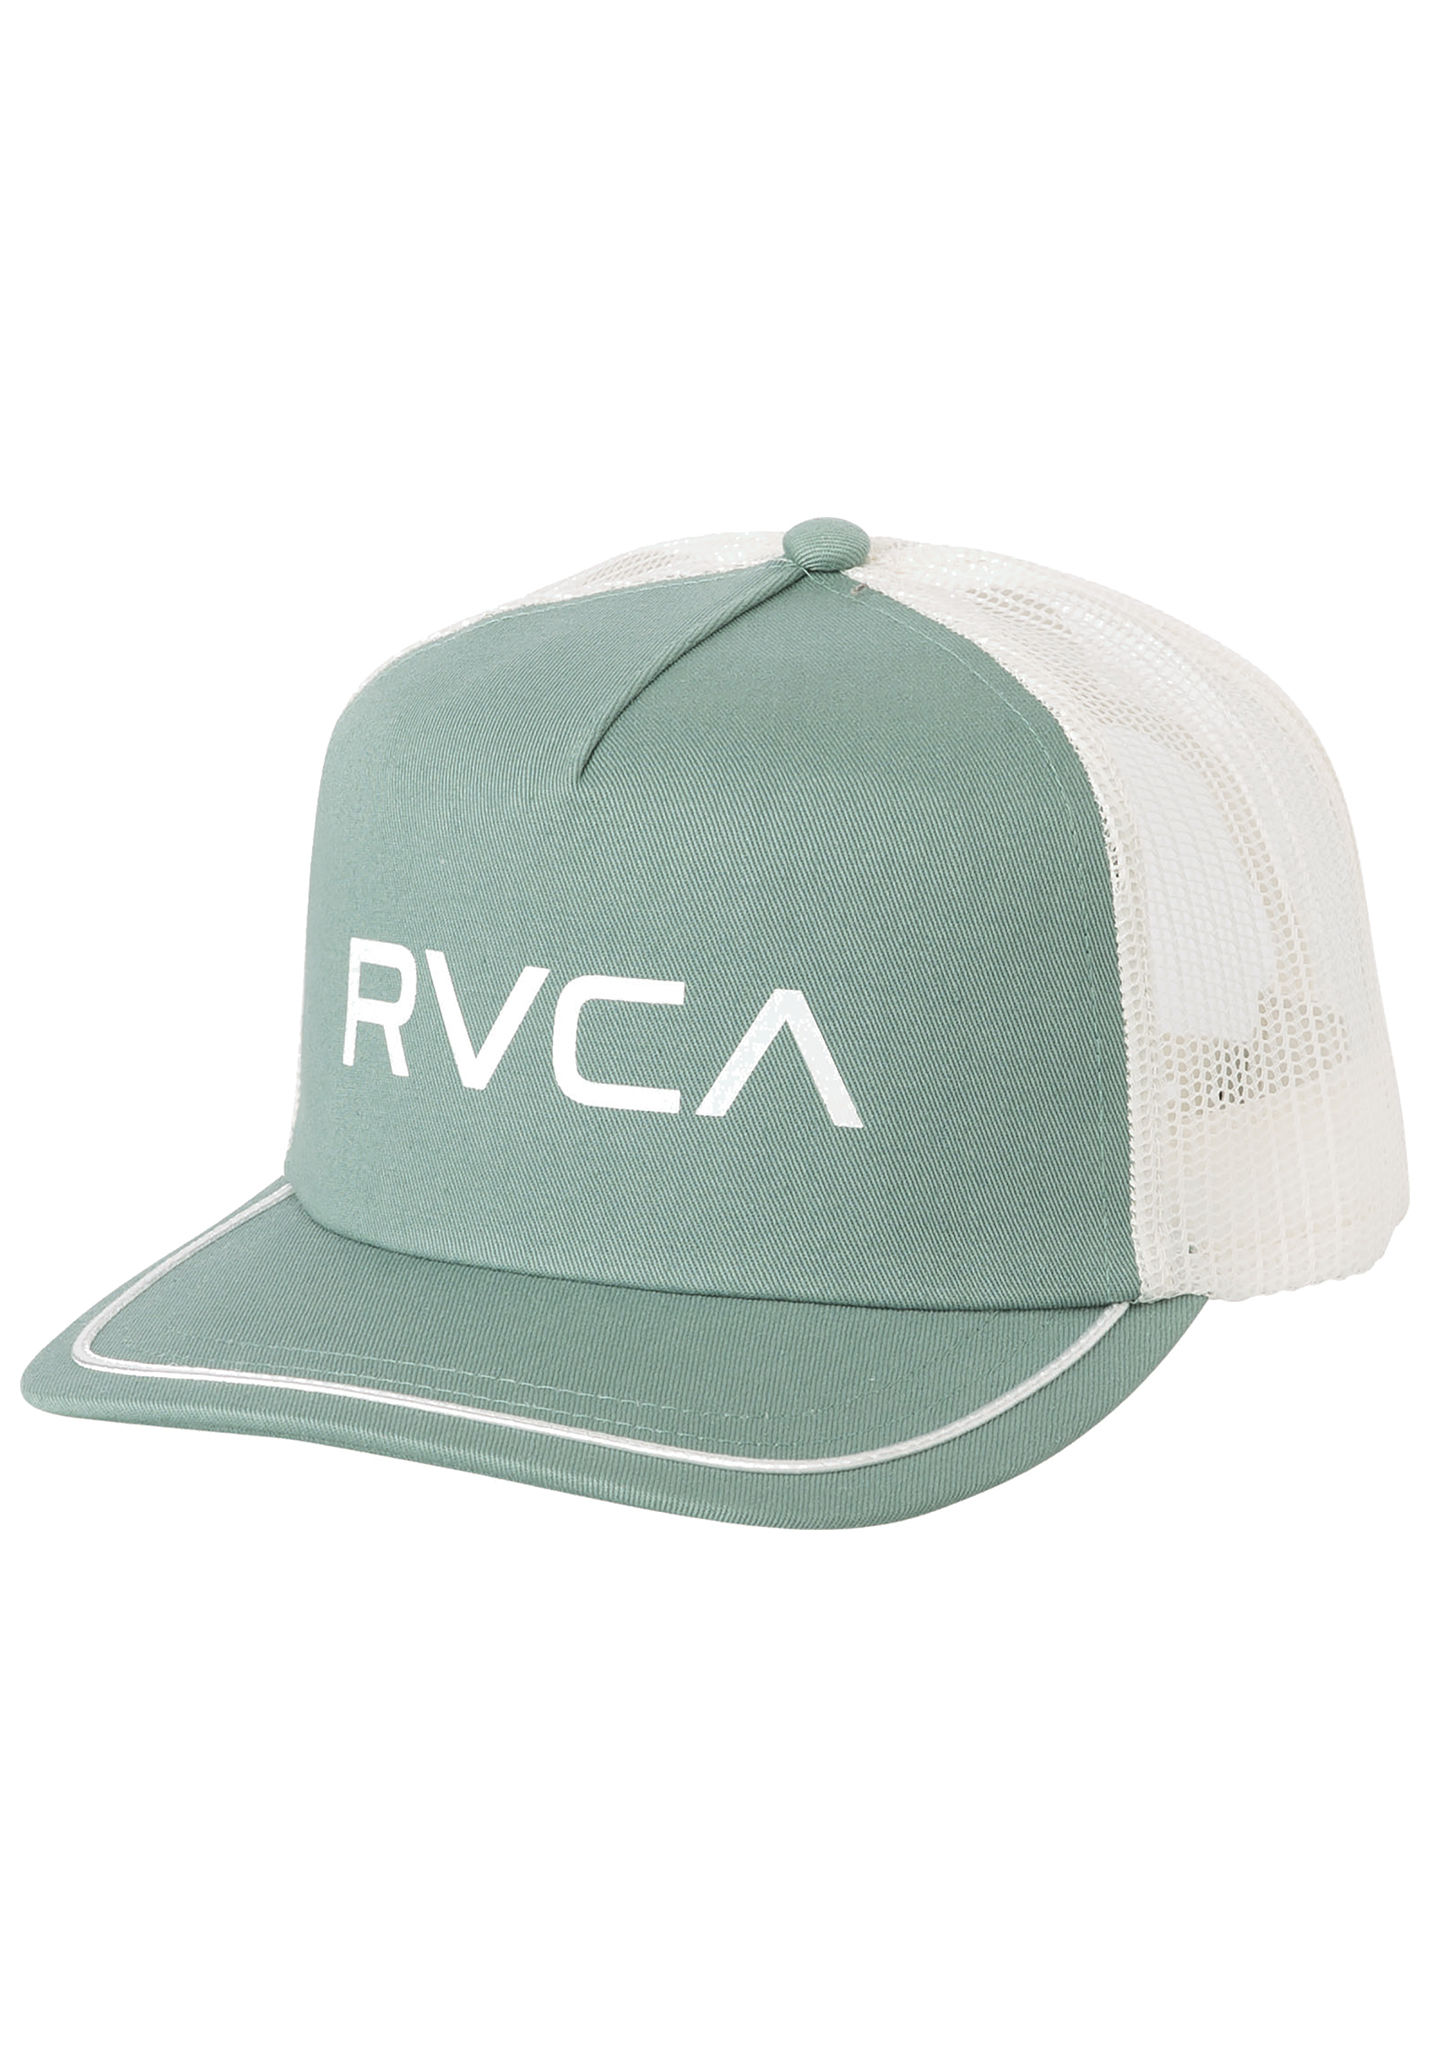 b56f002f0e6 RVCA Title - Trucker Cap for Women - Green - Planet Sports